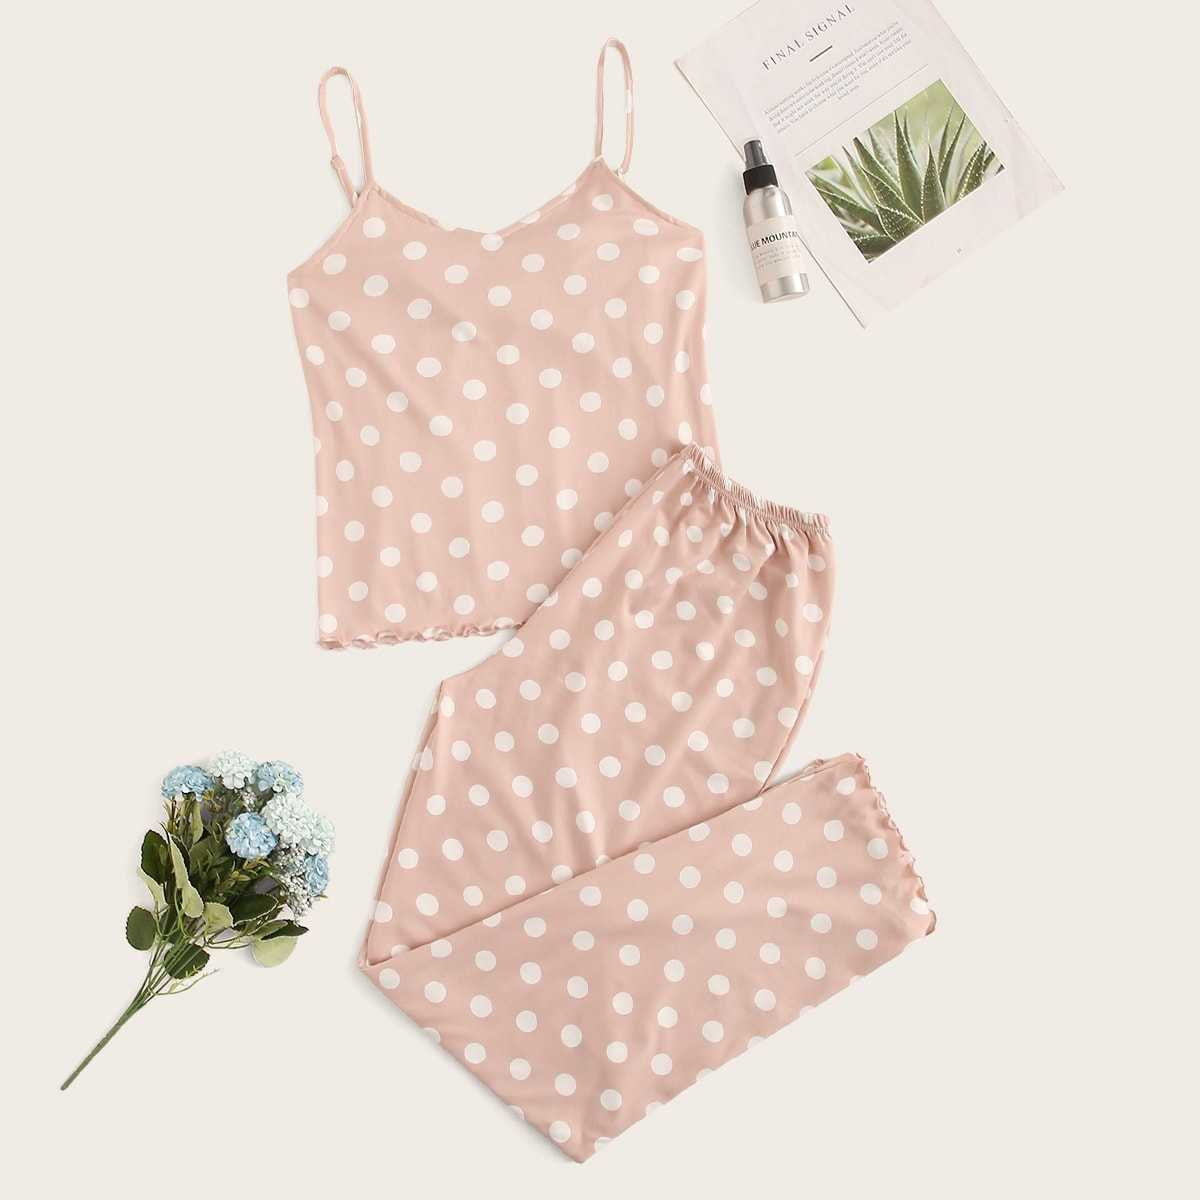 Polka Dot Lettuce Trim Cami Pajama Set in Pink by ROMWE on GOOFASH